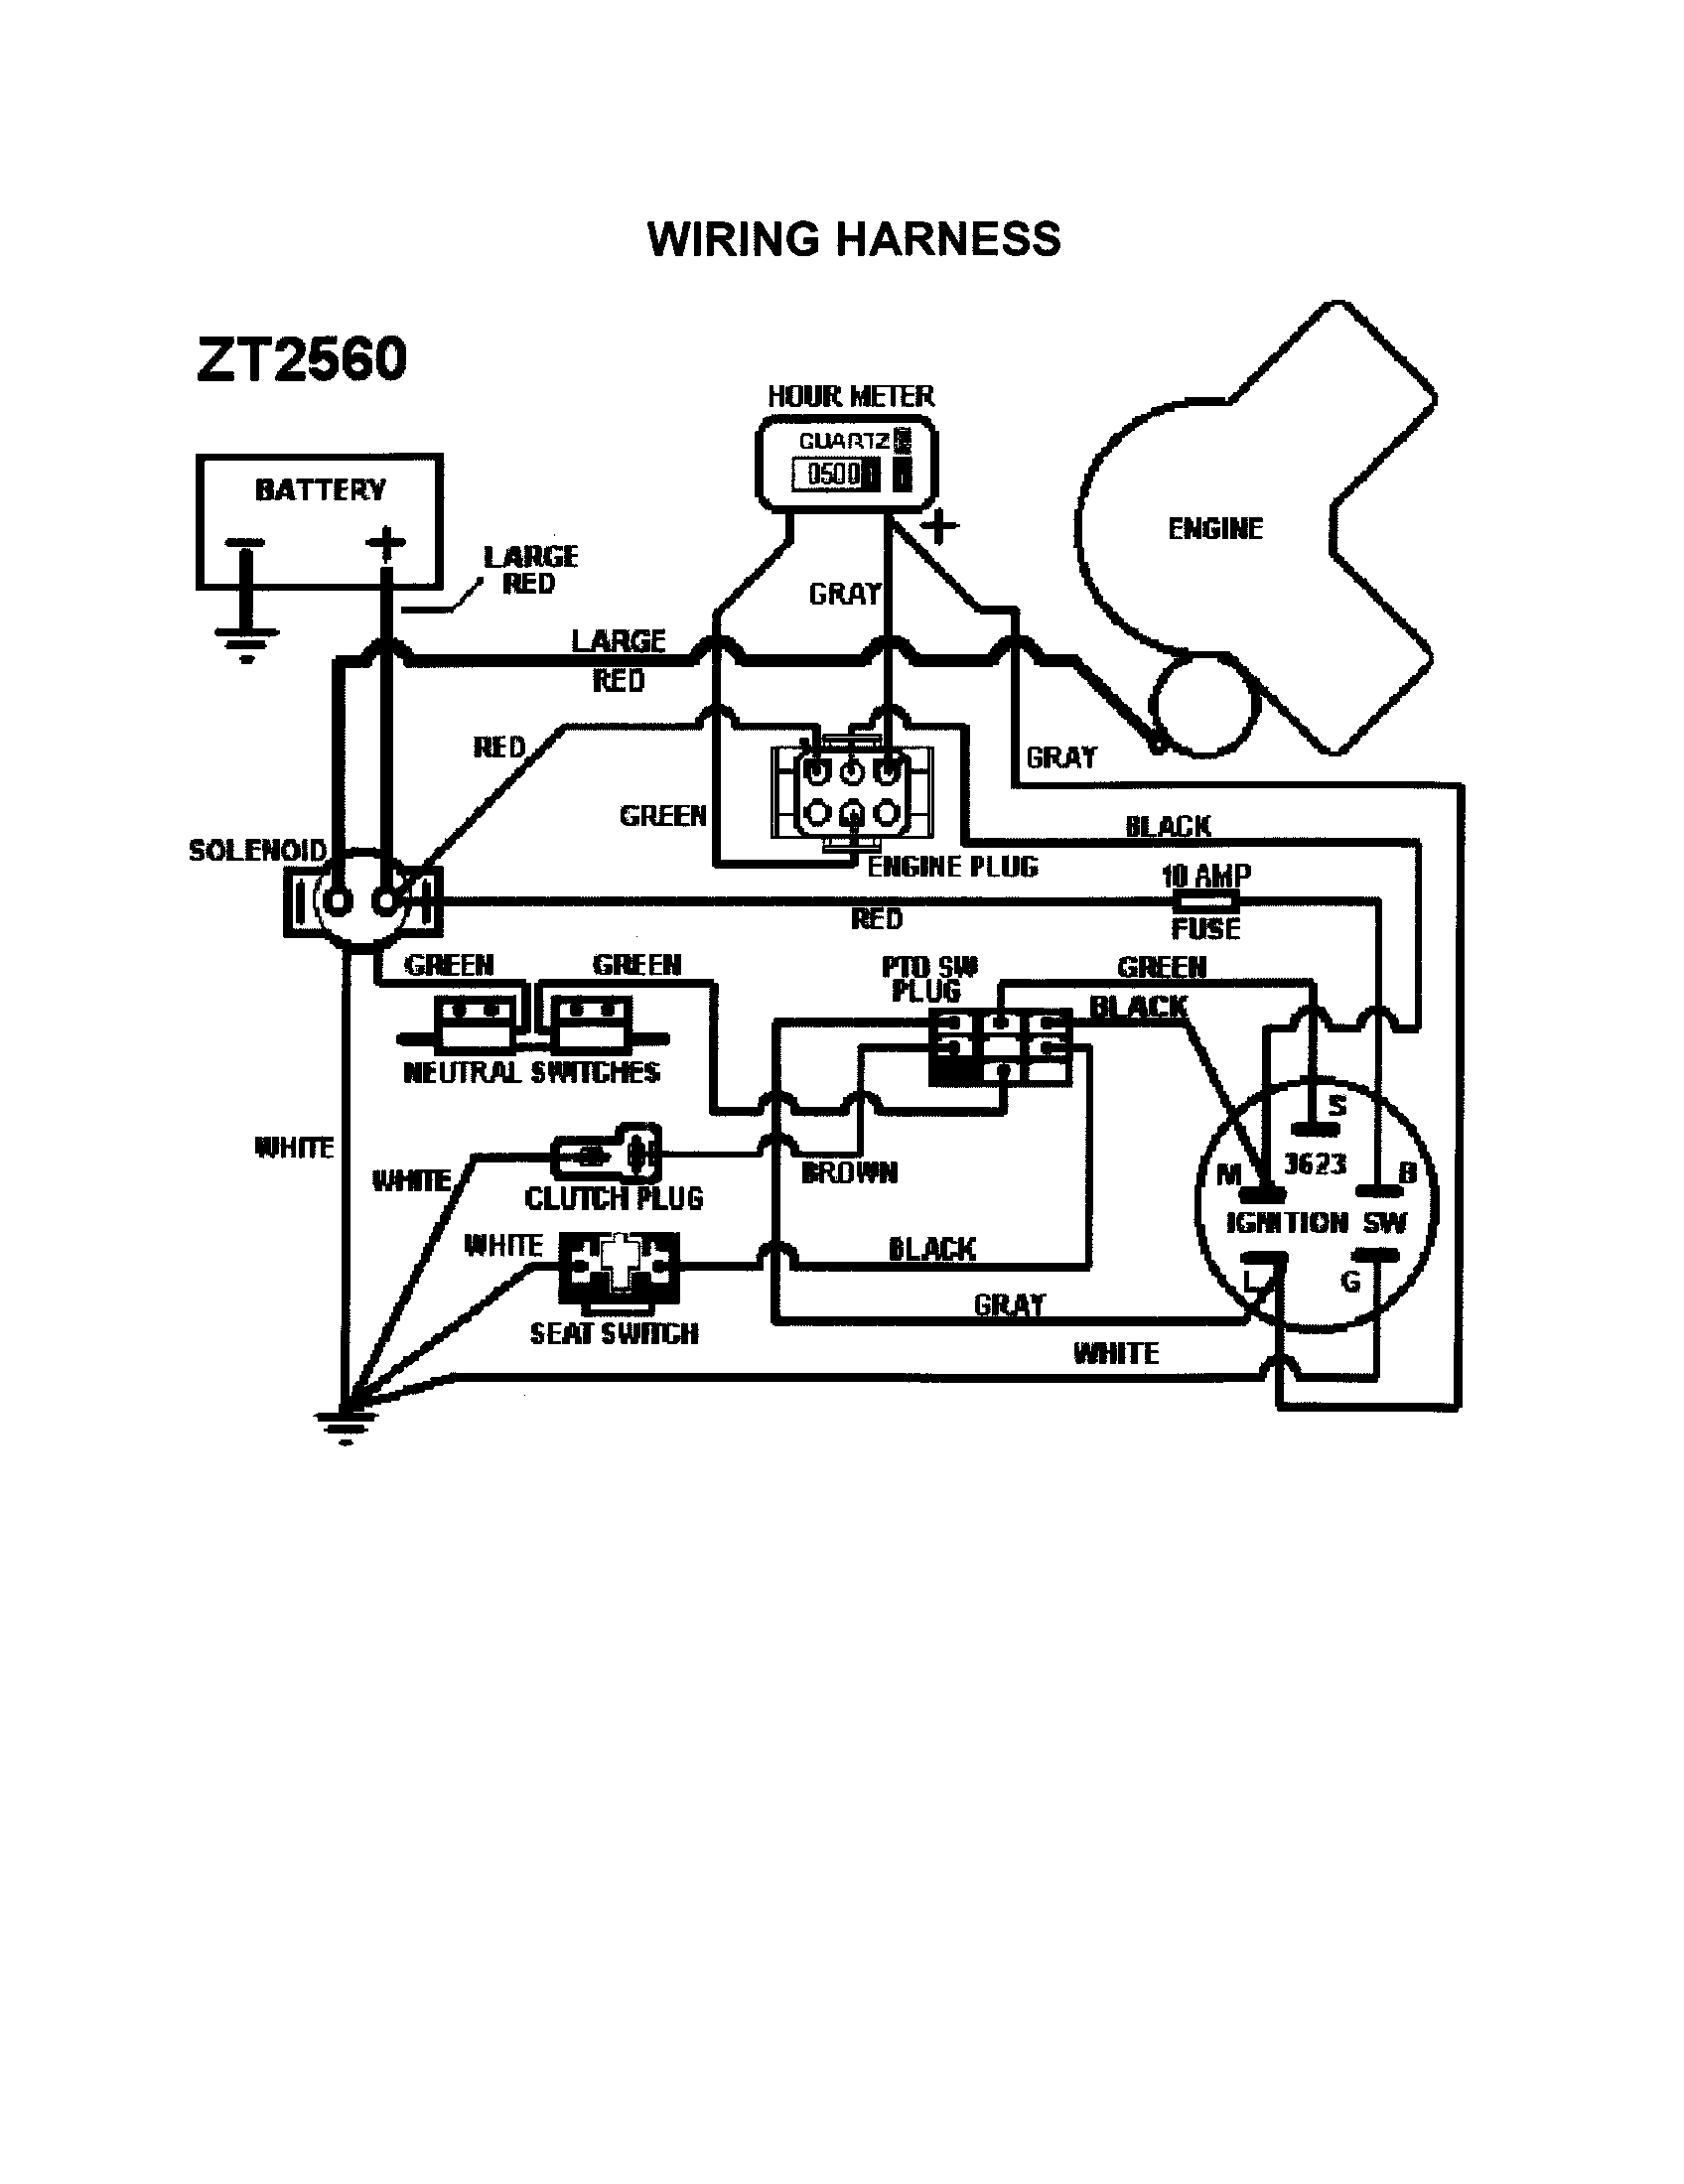 Wiring Harness Diagram  U0026 Parts List For Model Zt2560